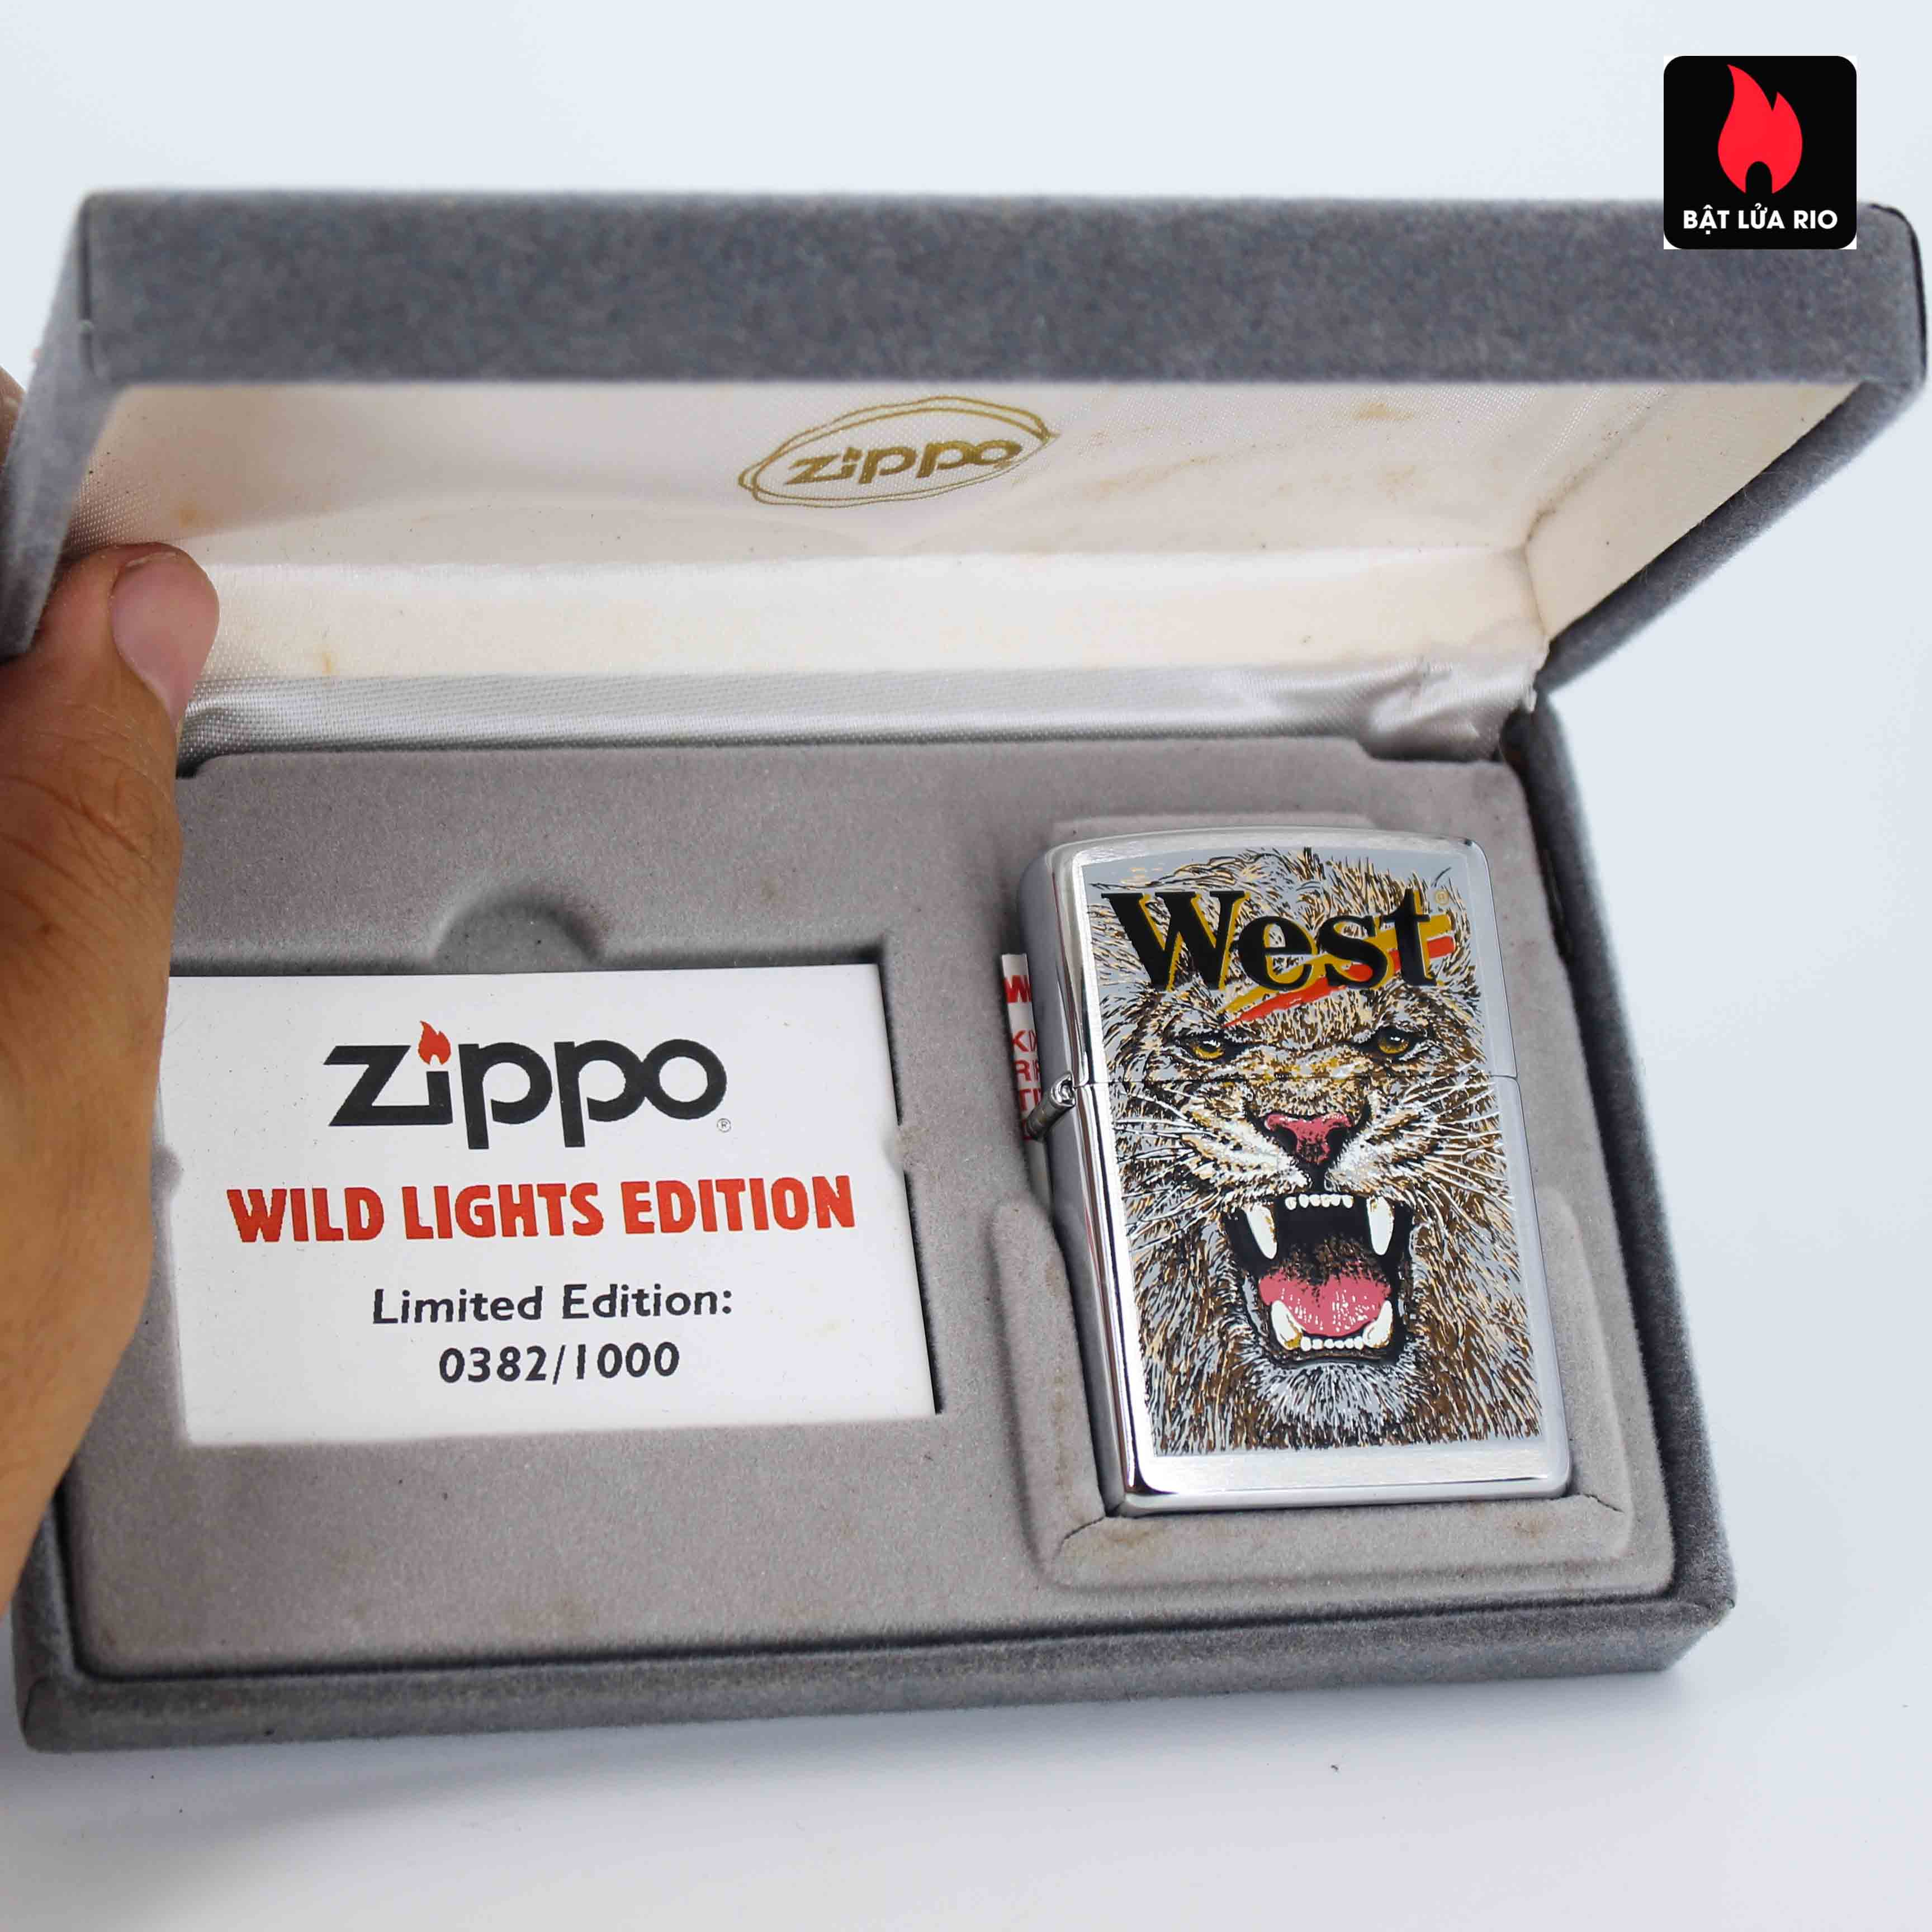 Zippo 2001 - Wild Lighters Edition - Limited Edition /1000 20